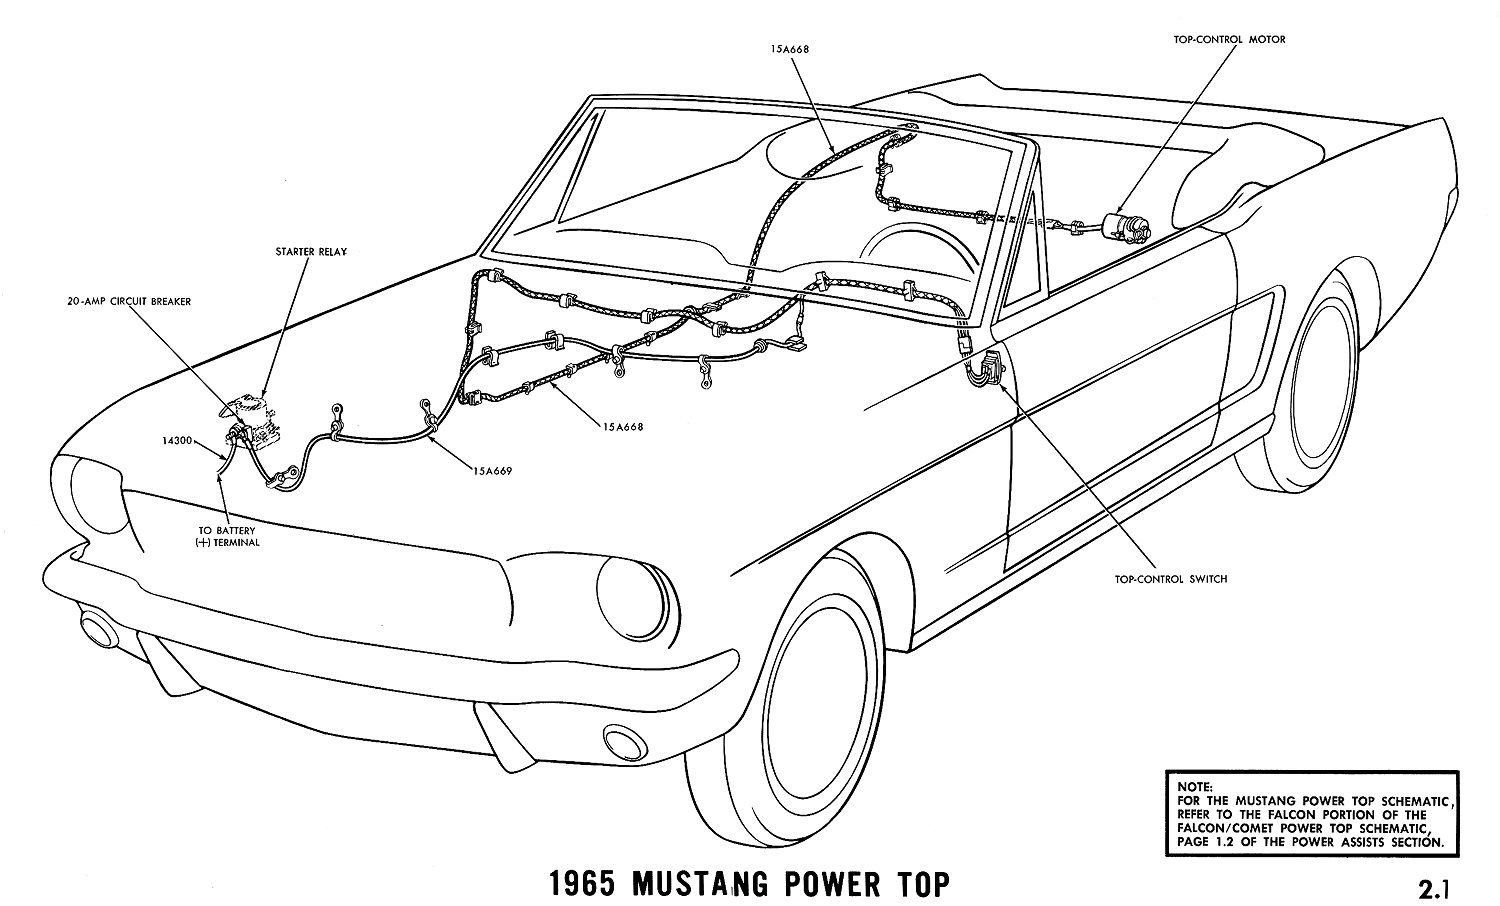 1965j 1965 mustang wiring diagrams average joe restoration 1967 Mustang Wiring Schematic at crackthecode.co